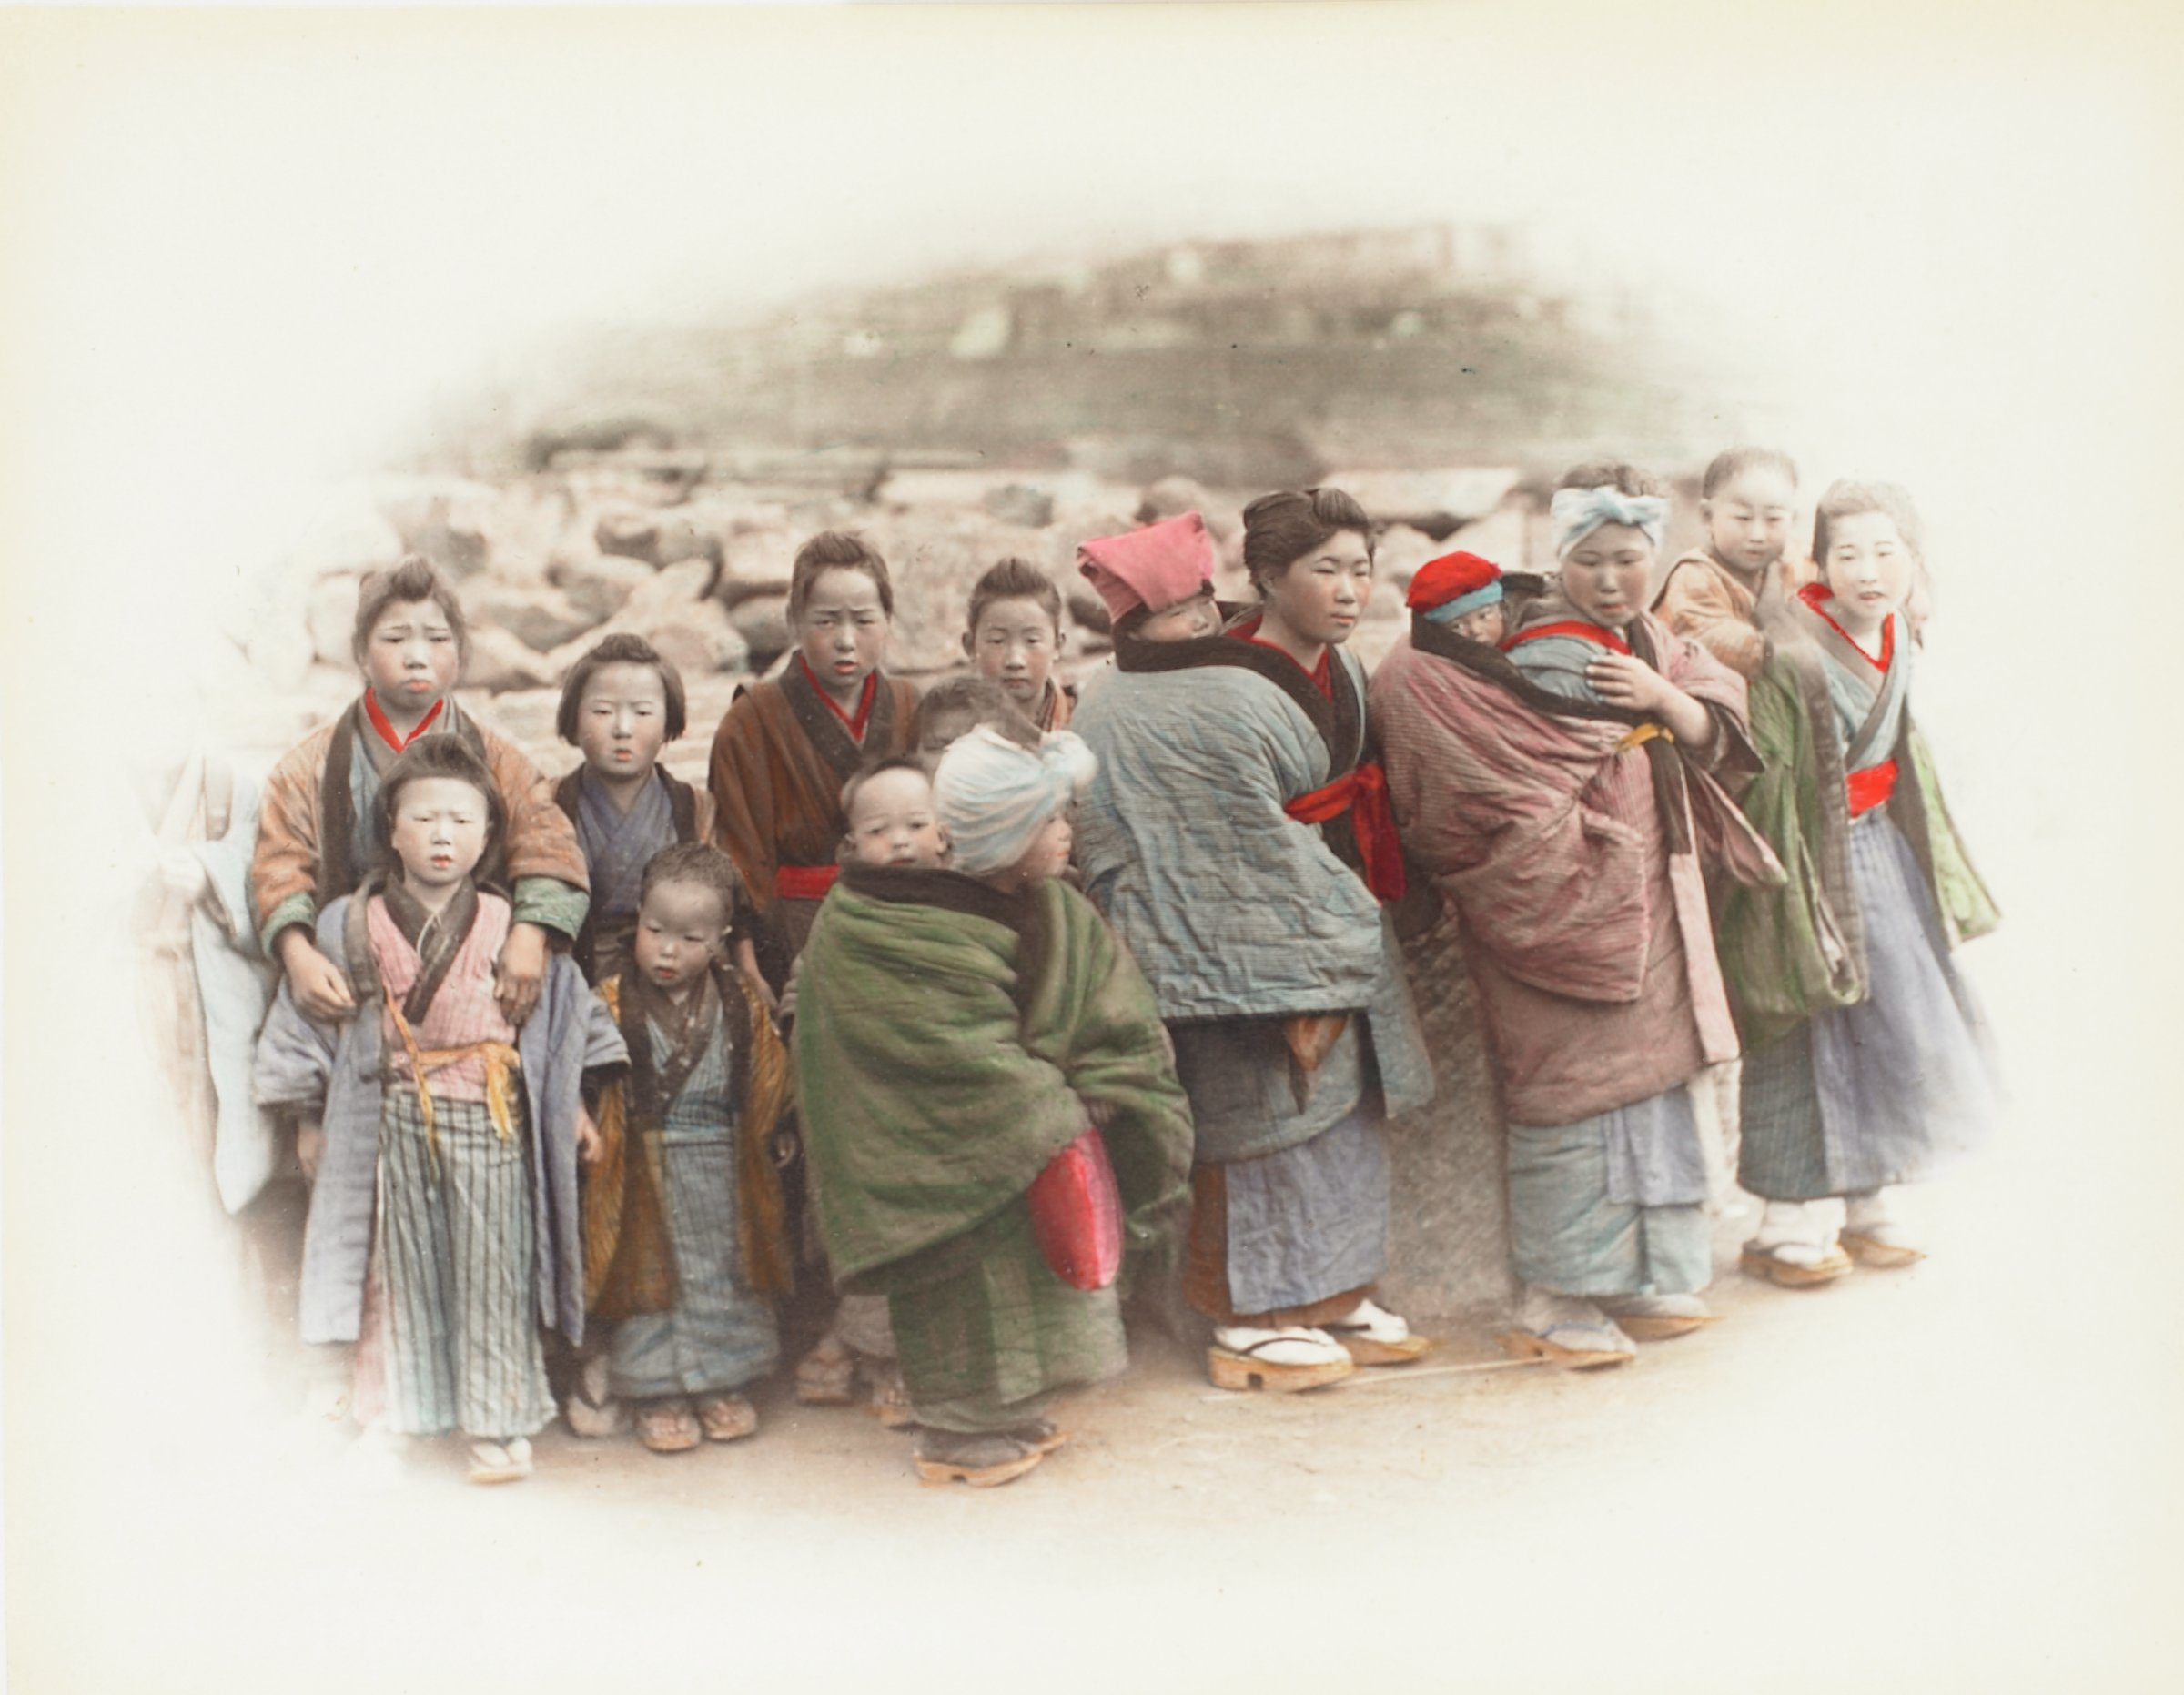 Pounding Rice (.18, recto); Country Children (.19, verso), Attributed to Kusakabe Kimbei, hand-colored albumen prints mounted to album page